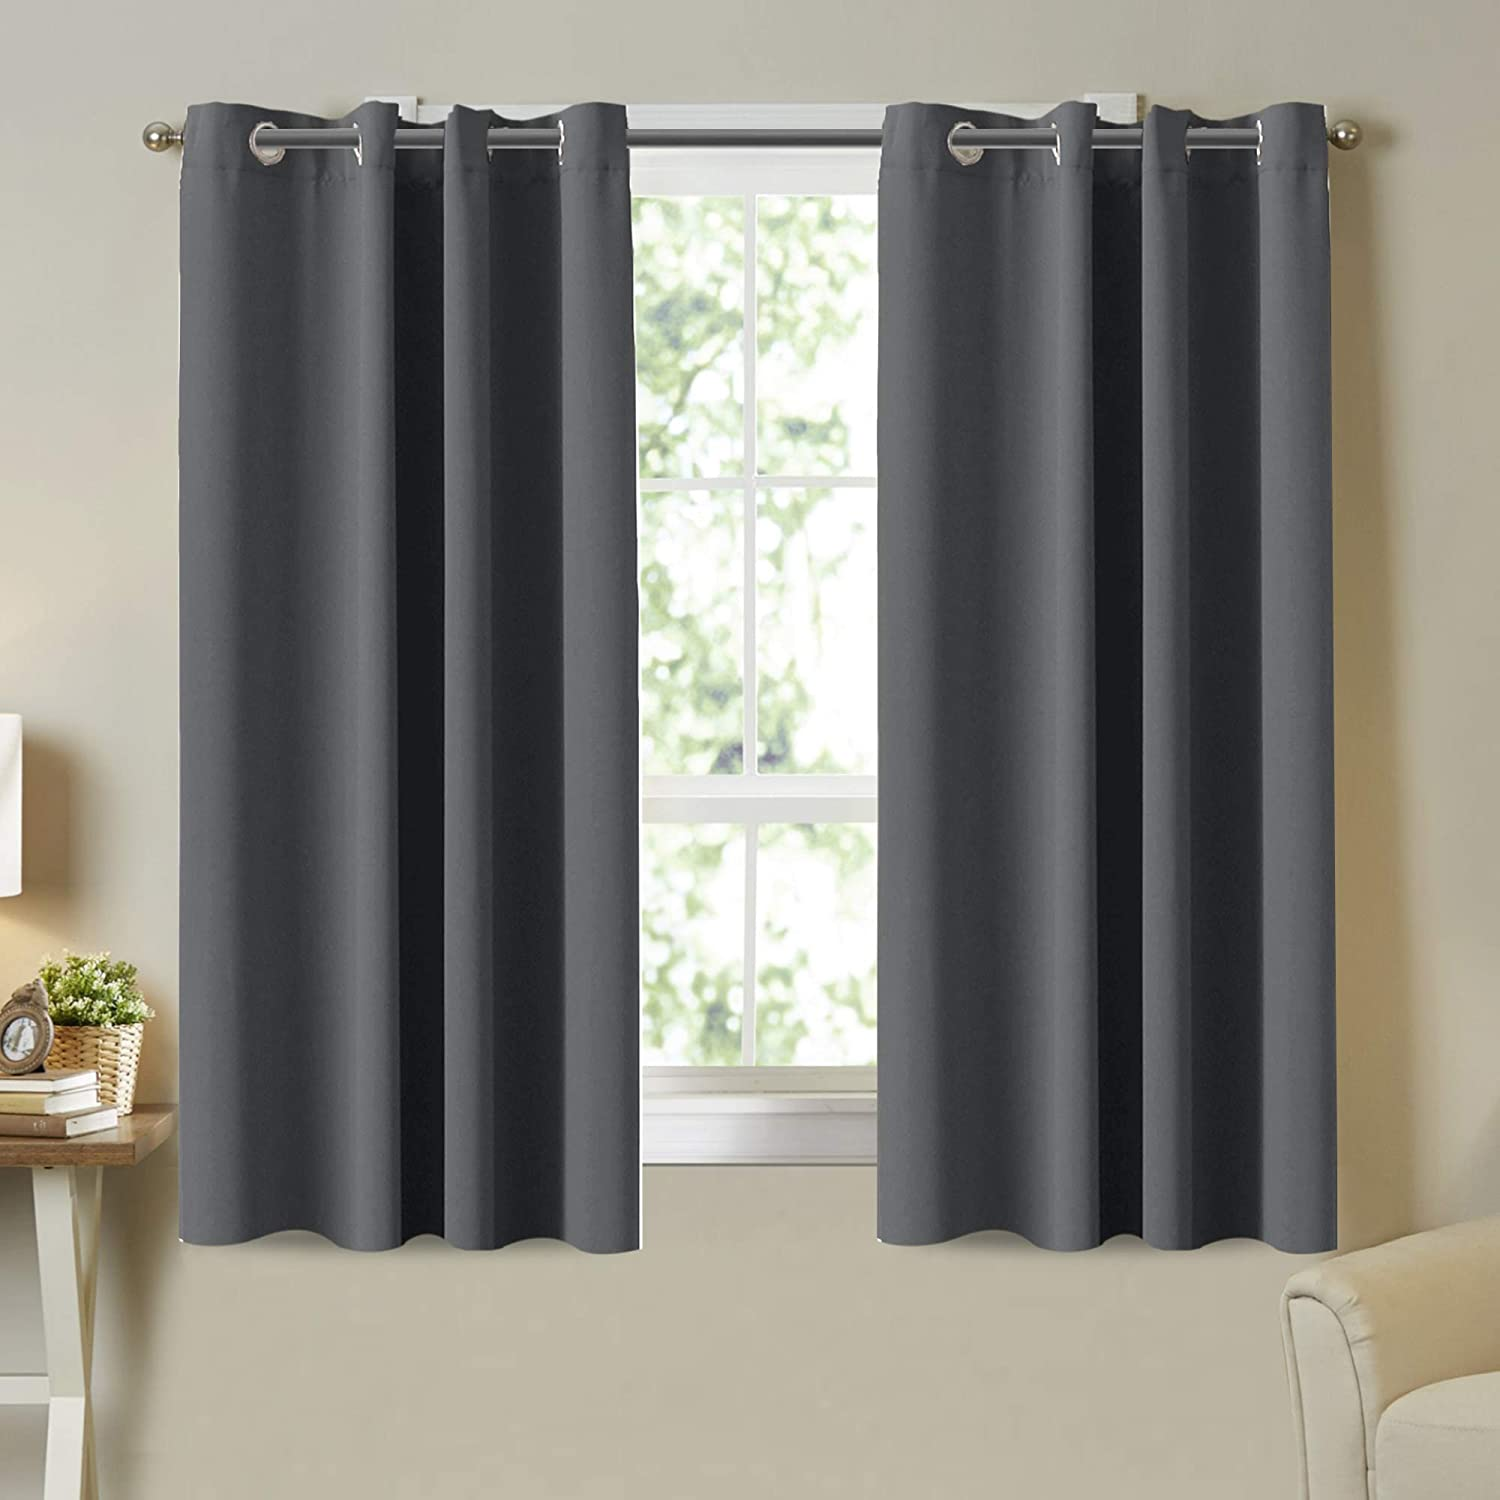 Grey Blackout Curtain Panels for Bedroom- Thermal Insulated Solid Grommet Top Blackout Curtains/Drapes for Kid's Room Blackout Draperies Curtains (2 Panels, 52 by 63 Inch, Charcoal Gray)